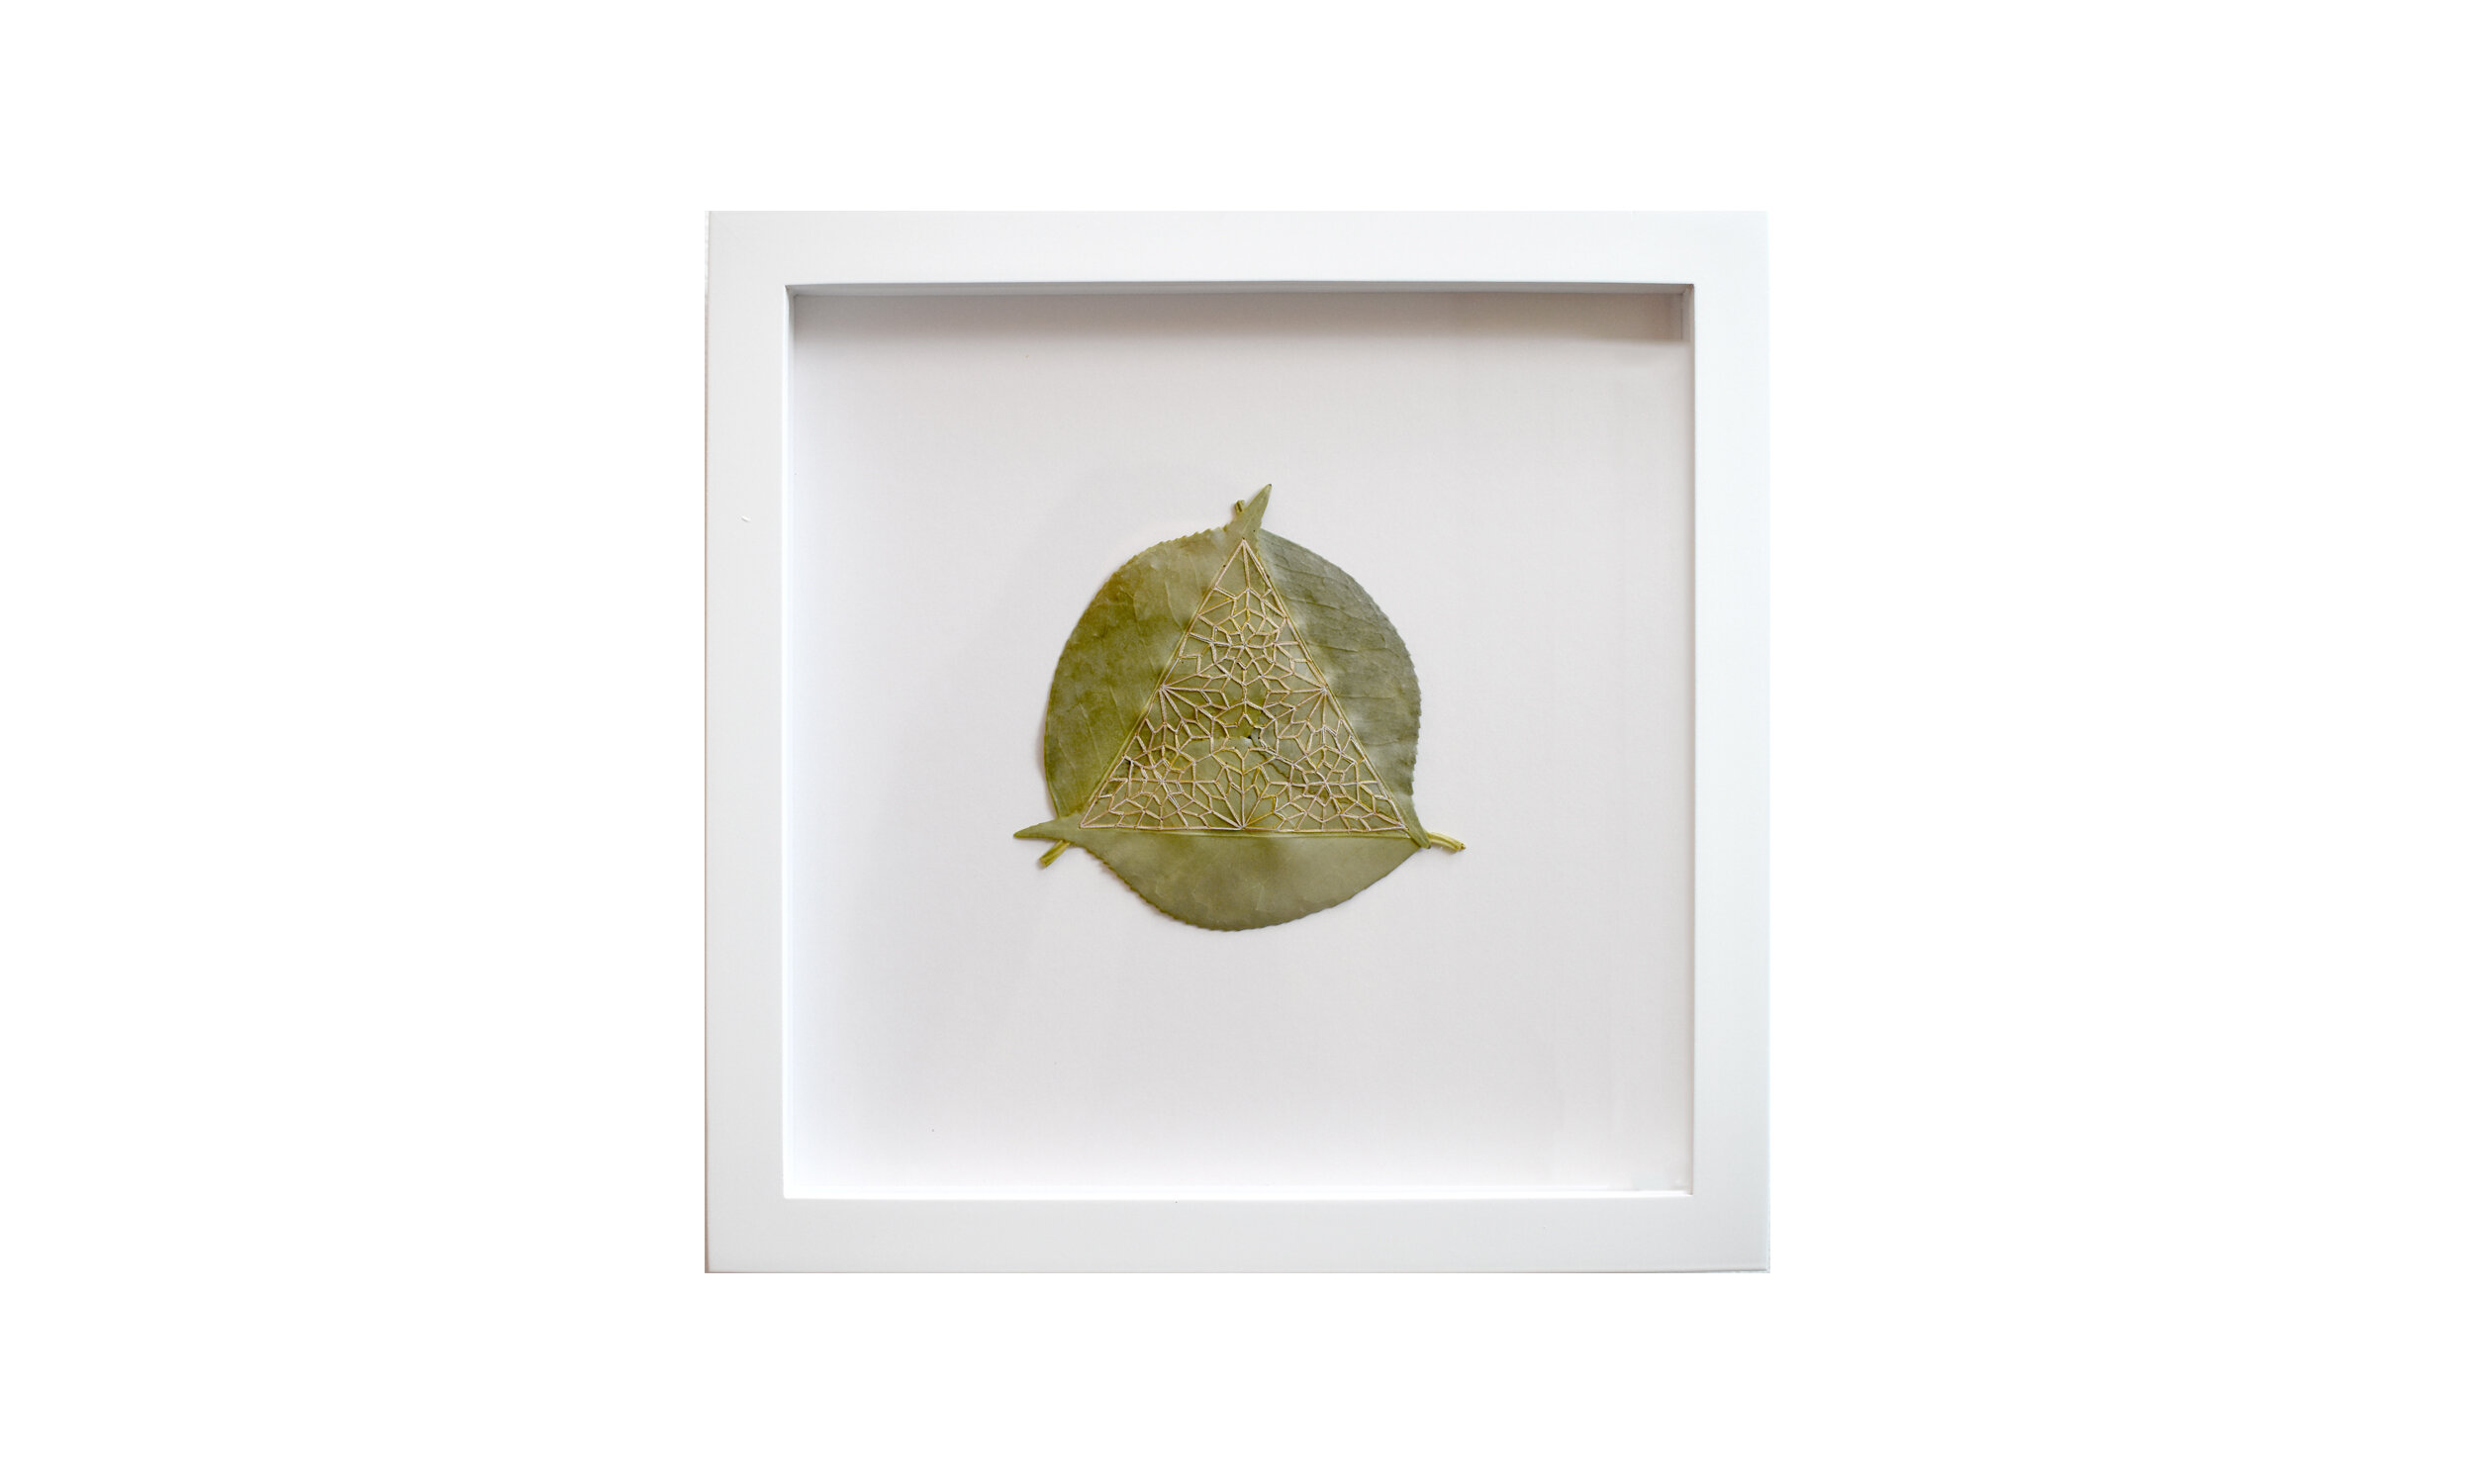 """Tetrahedron I,  stitched camellia leaves, 11.25"""" x 11.25"""", $ 850    Contact us for purchase"""